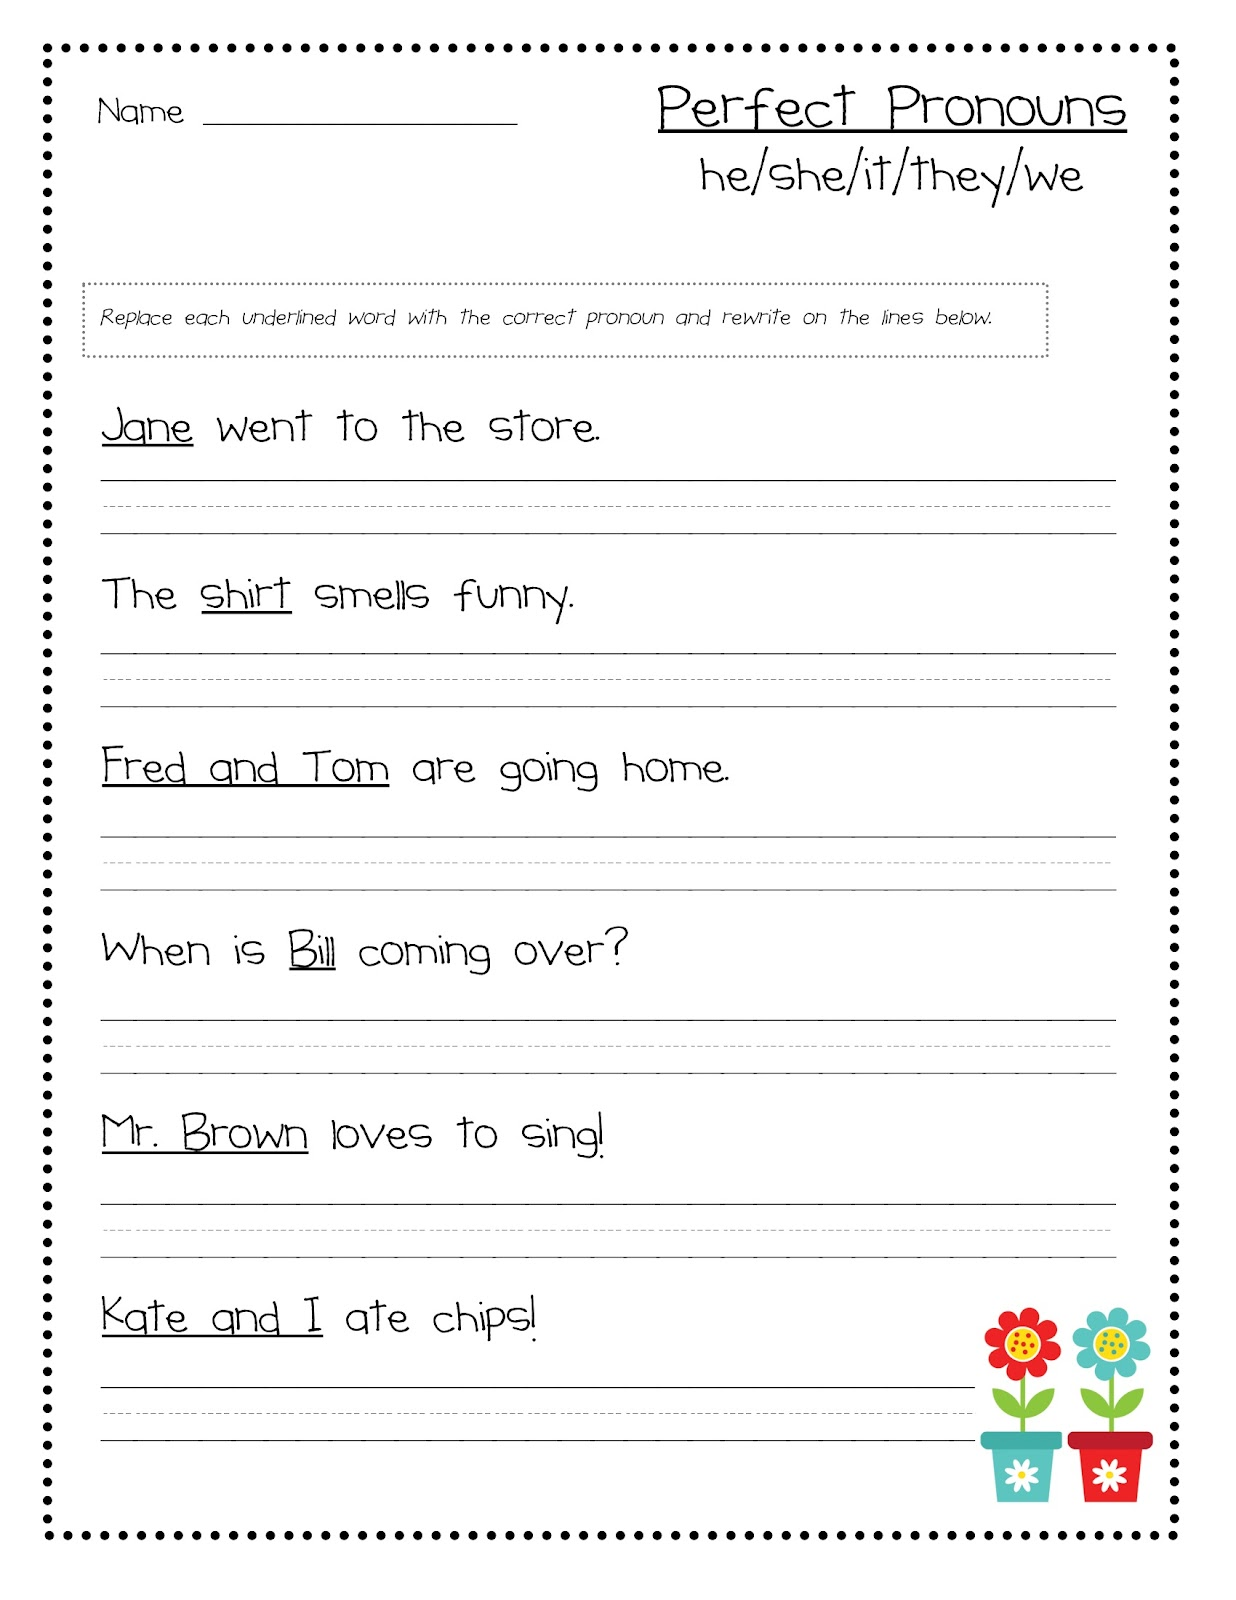 worksheet Noun Worksheets For 1st Grade 2nd grade possessive nouns worksheets abitlikethis pronouns perfect pronoun worksheet